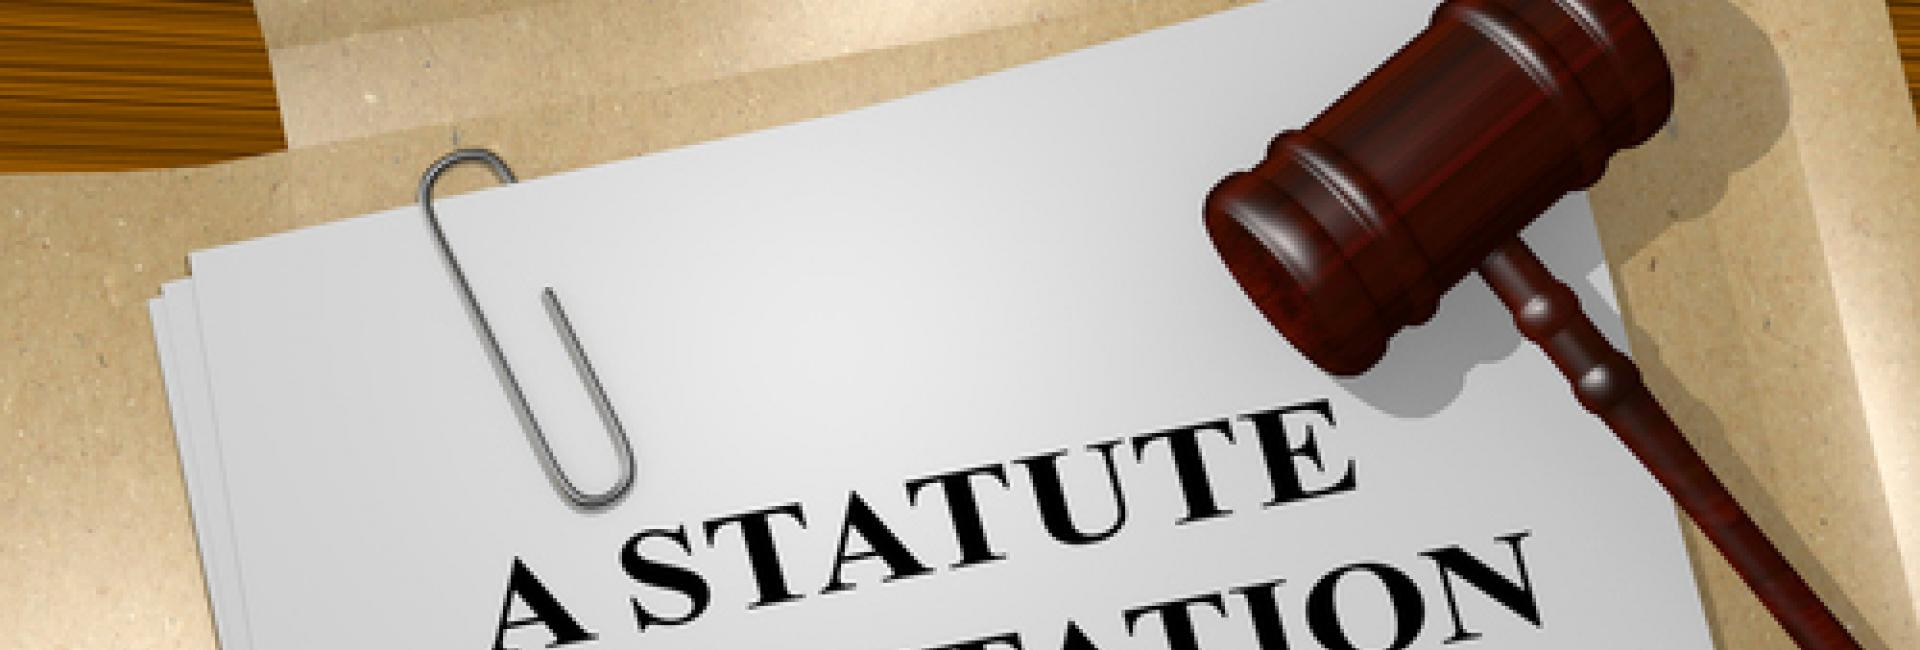 Statutes of Limitations for Accidents and Injuries in NYC